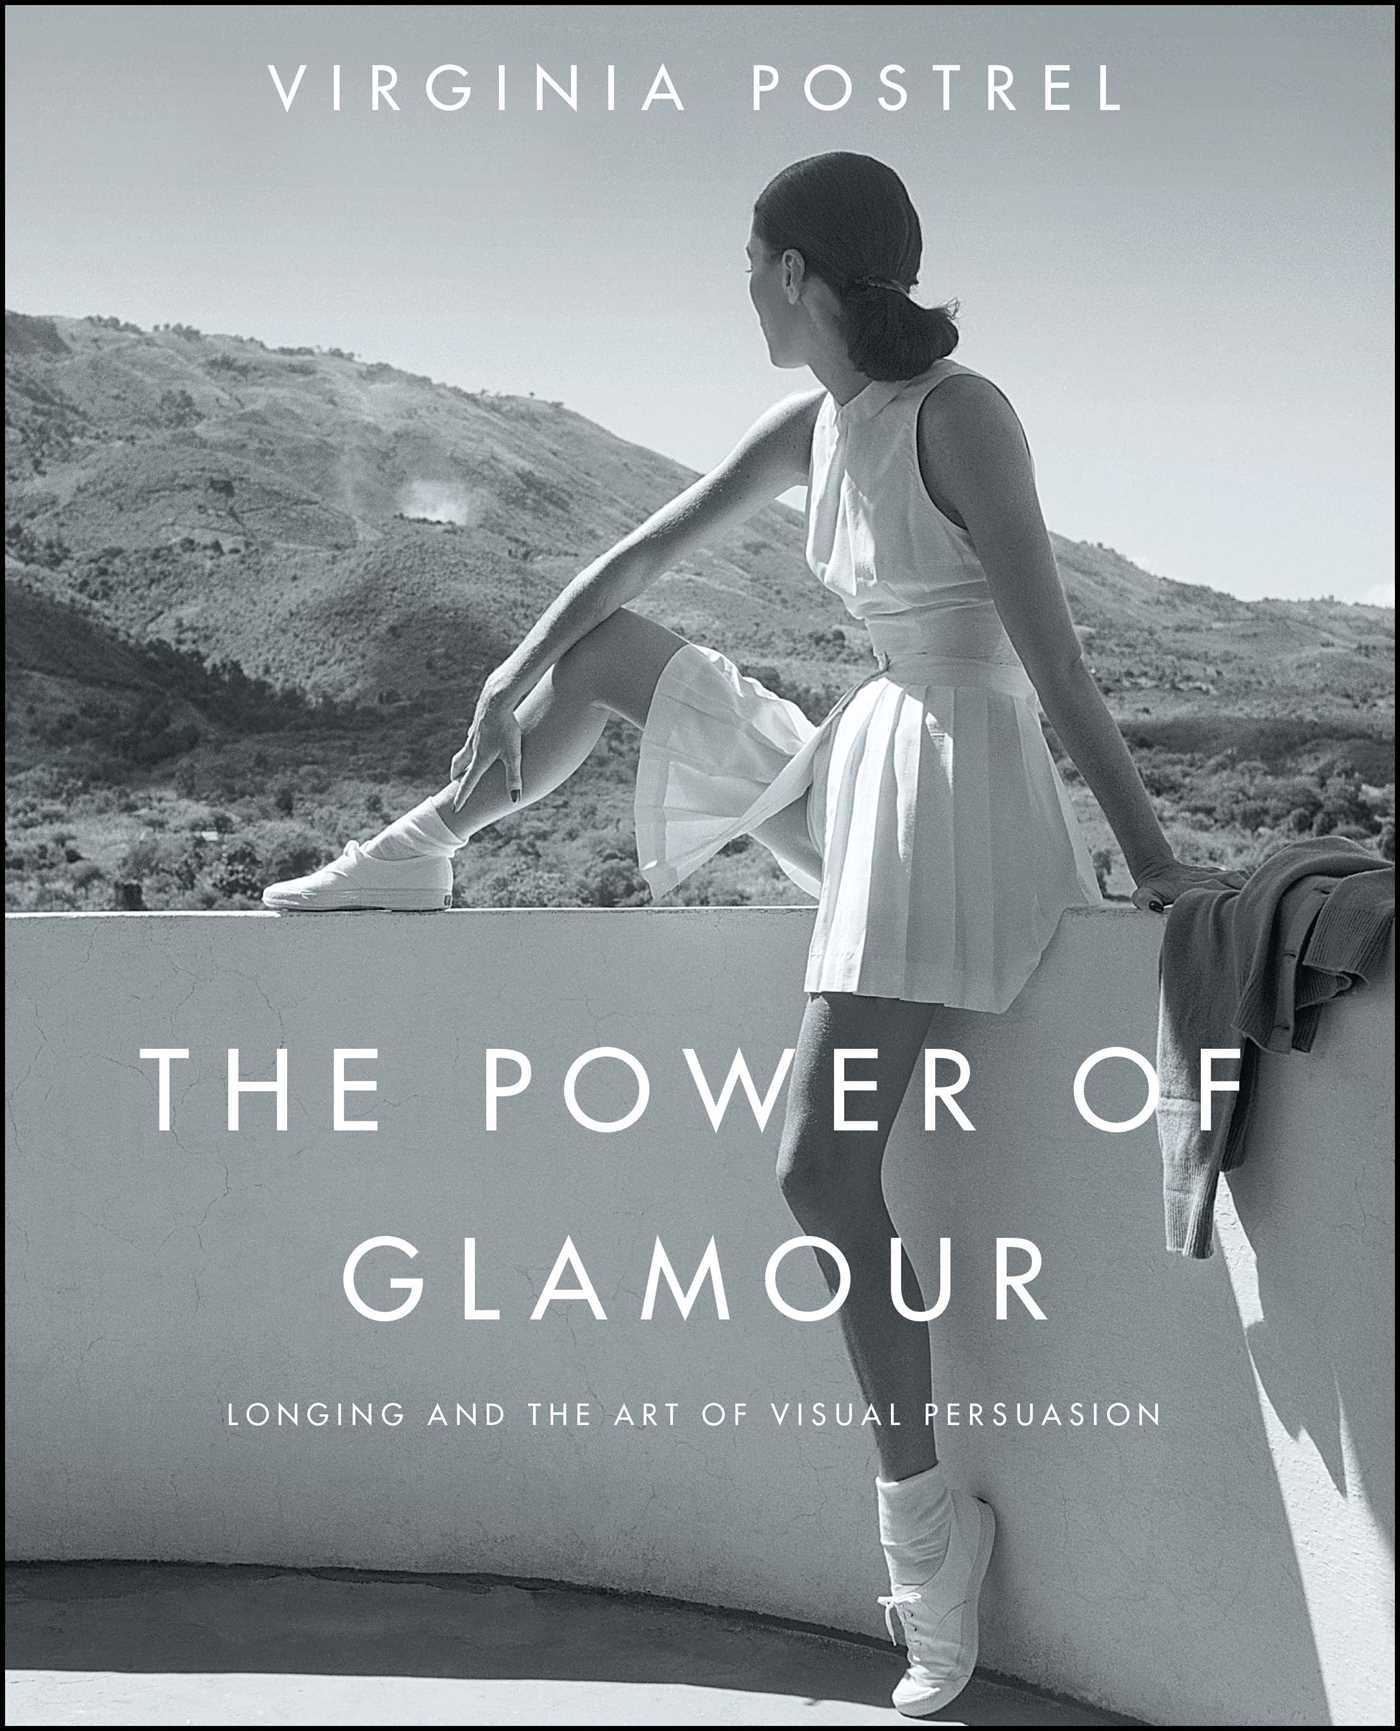 The power of glamour 9781416561125 hr